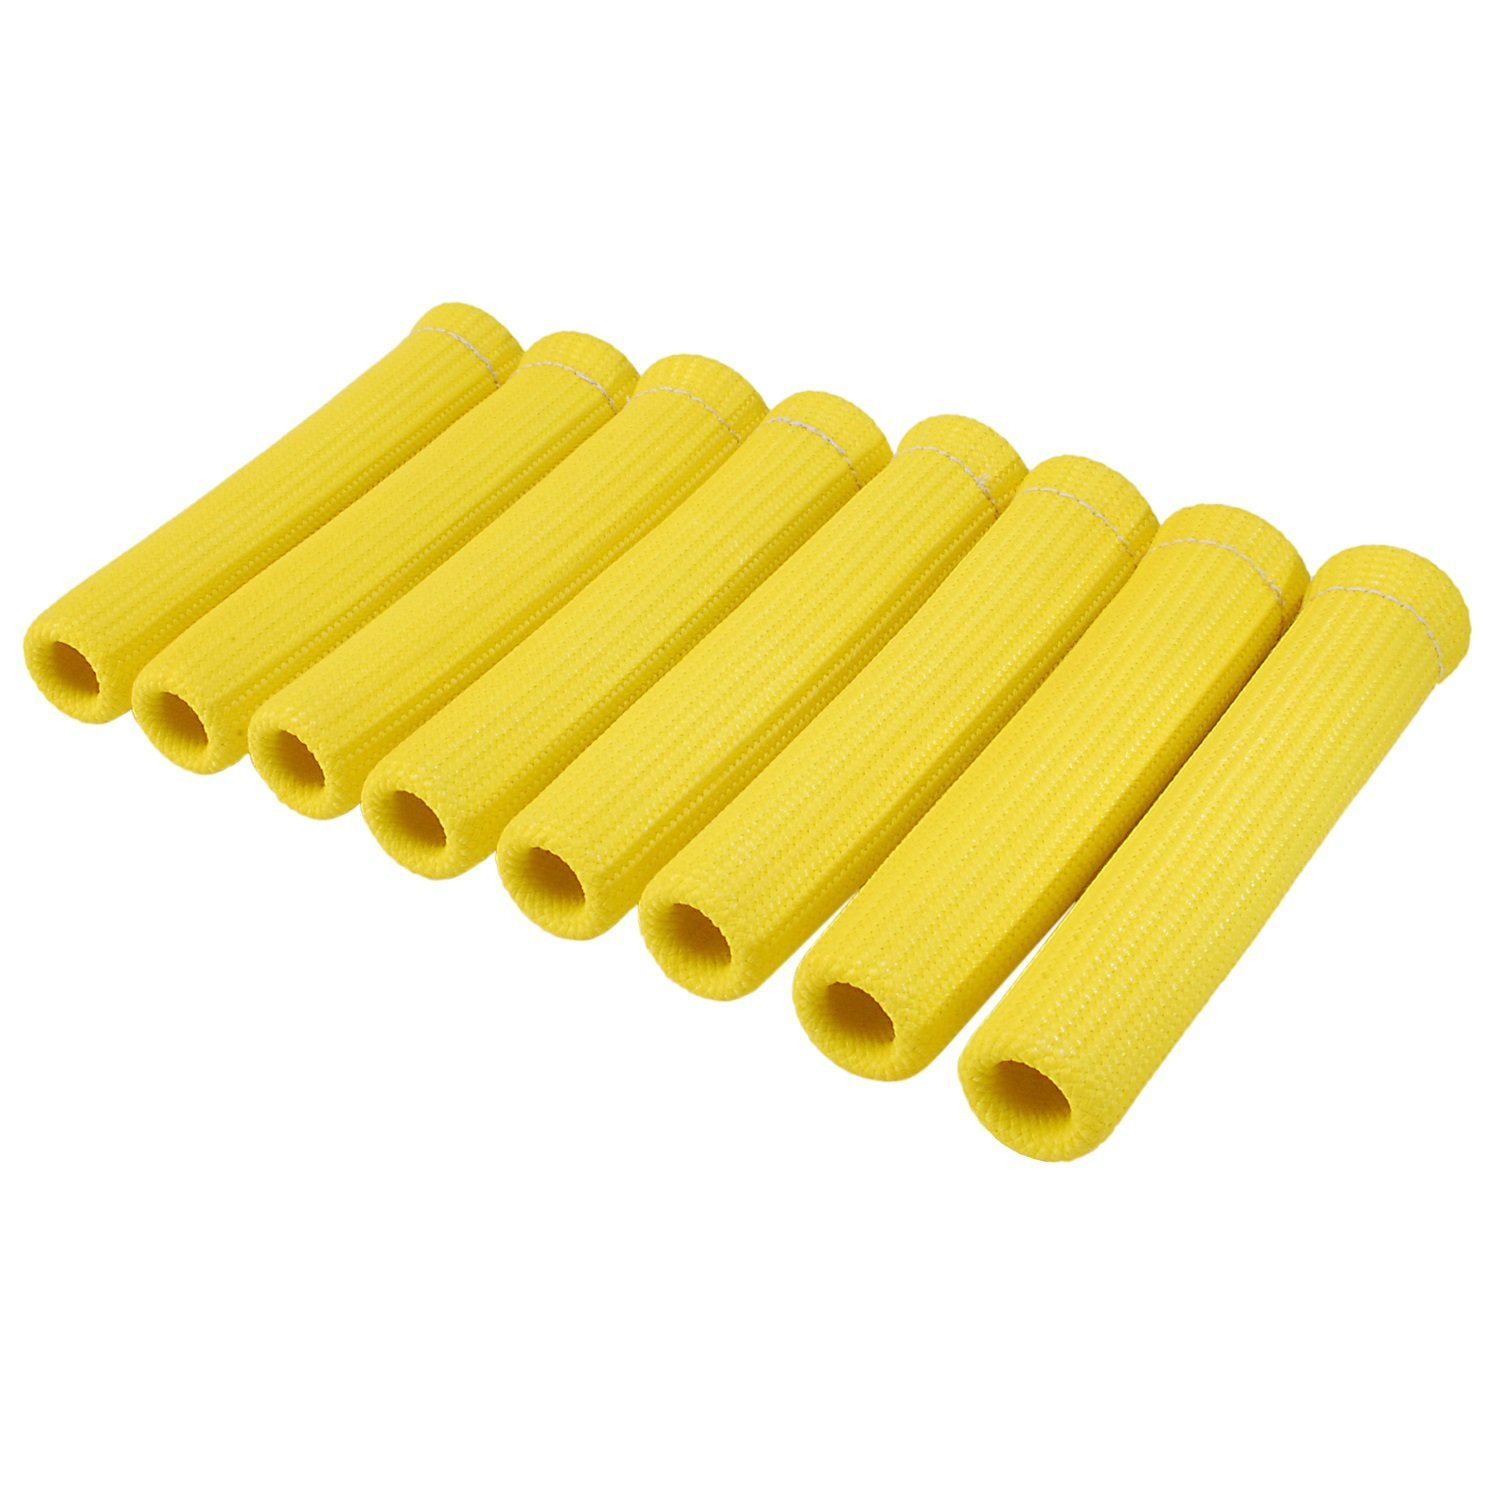 "Design Engineering 010562 Protect-A-Boots Spark Plug Boot Protector Sleeves, 6"" - Yellow (Pack of 8)"